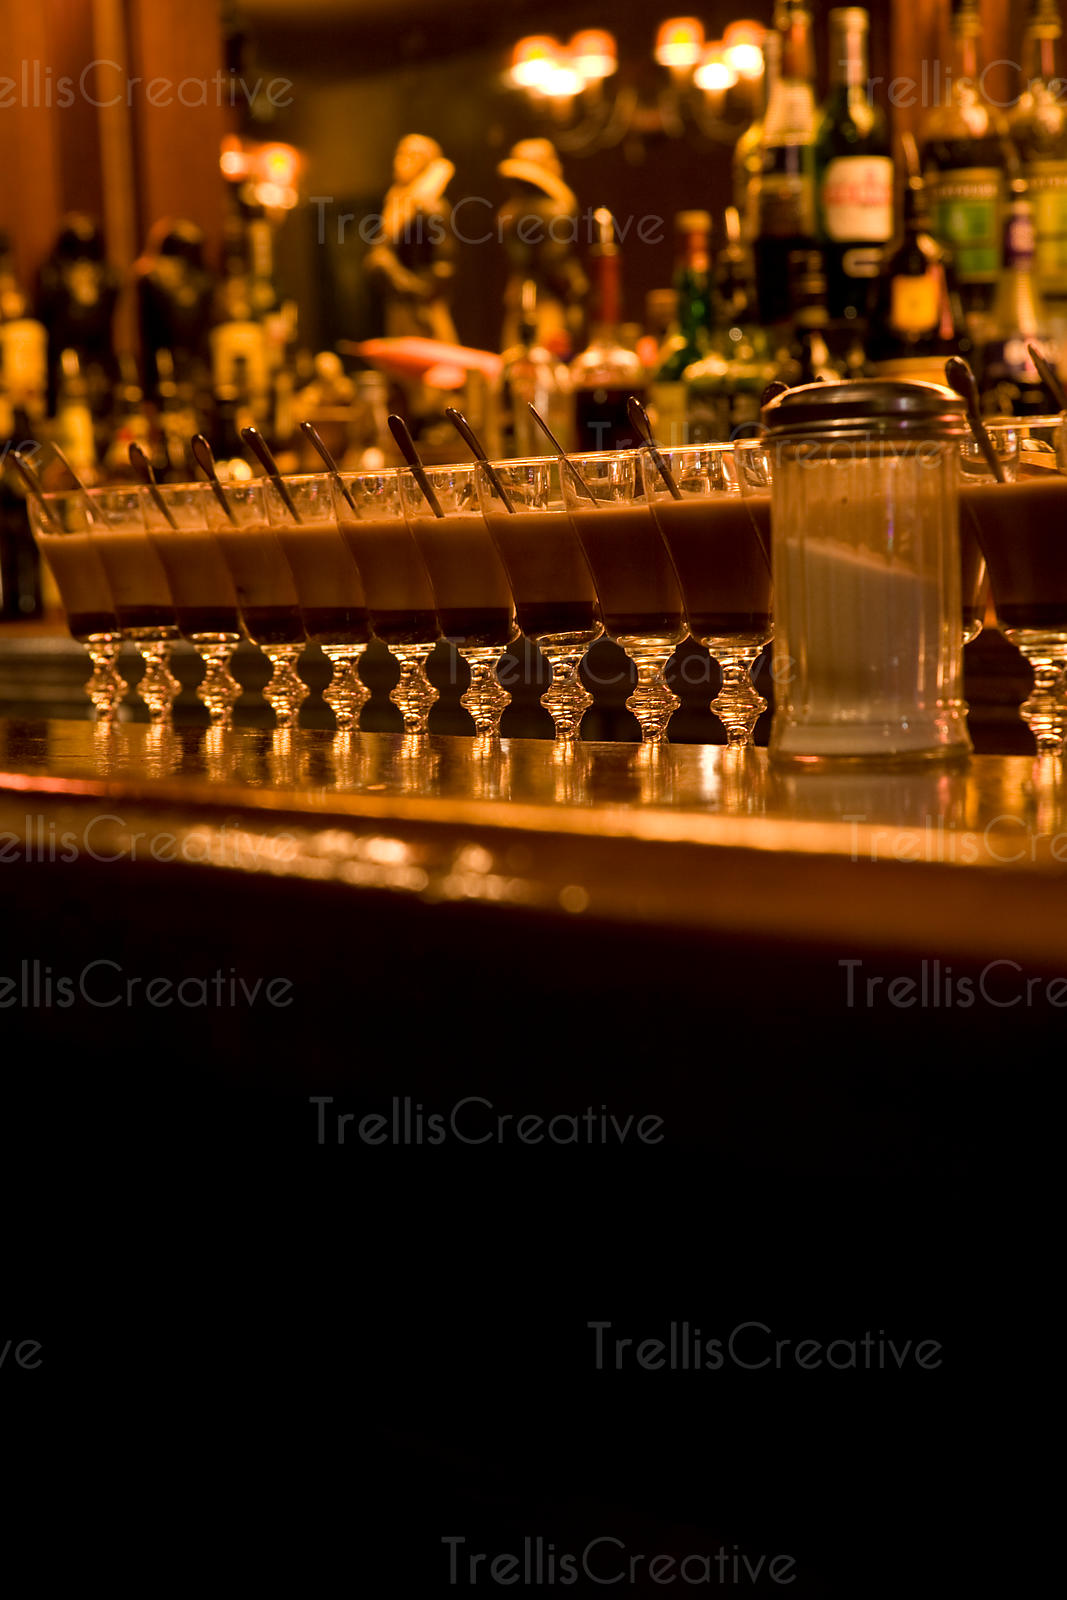 Several cocktails lined up on restaurant bar